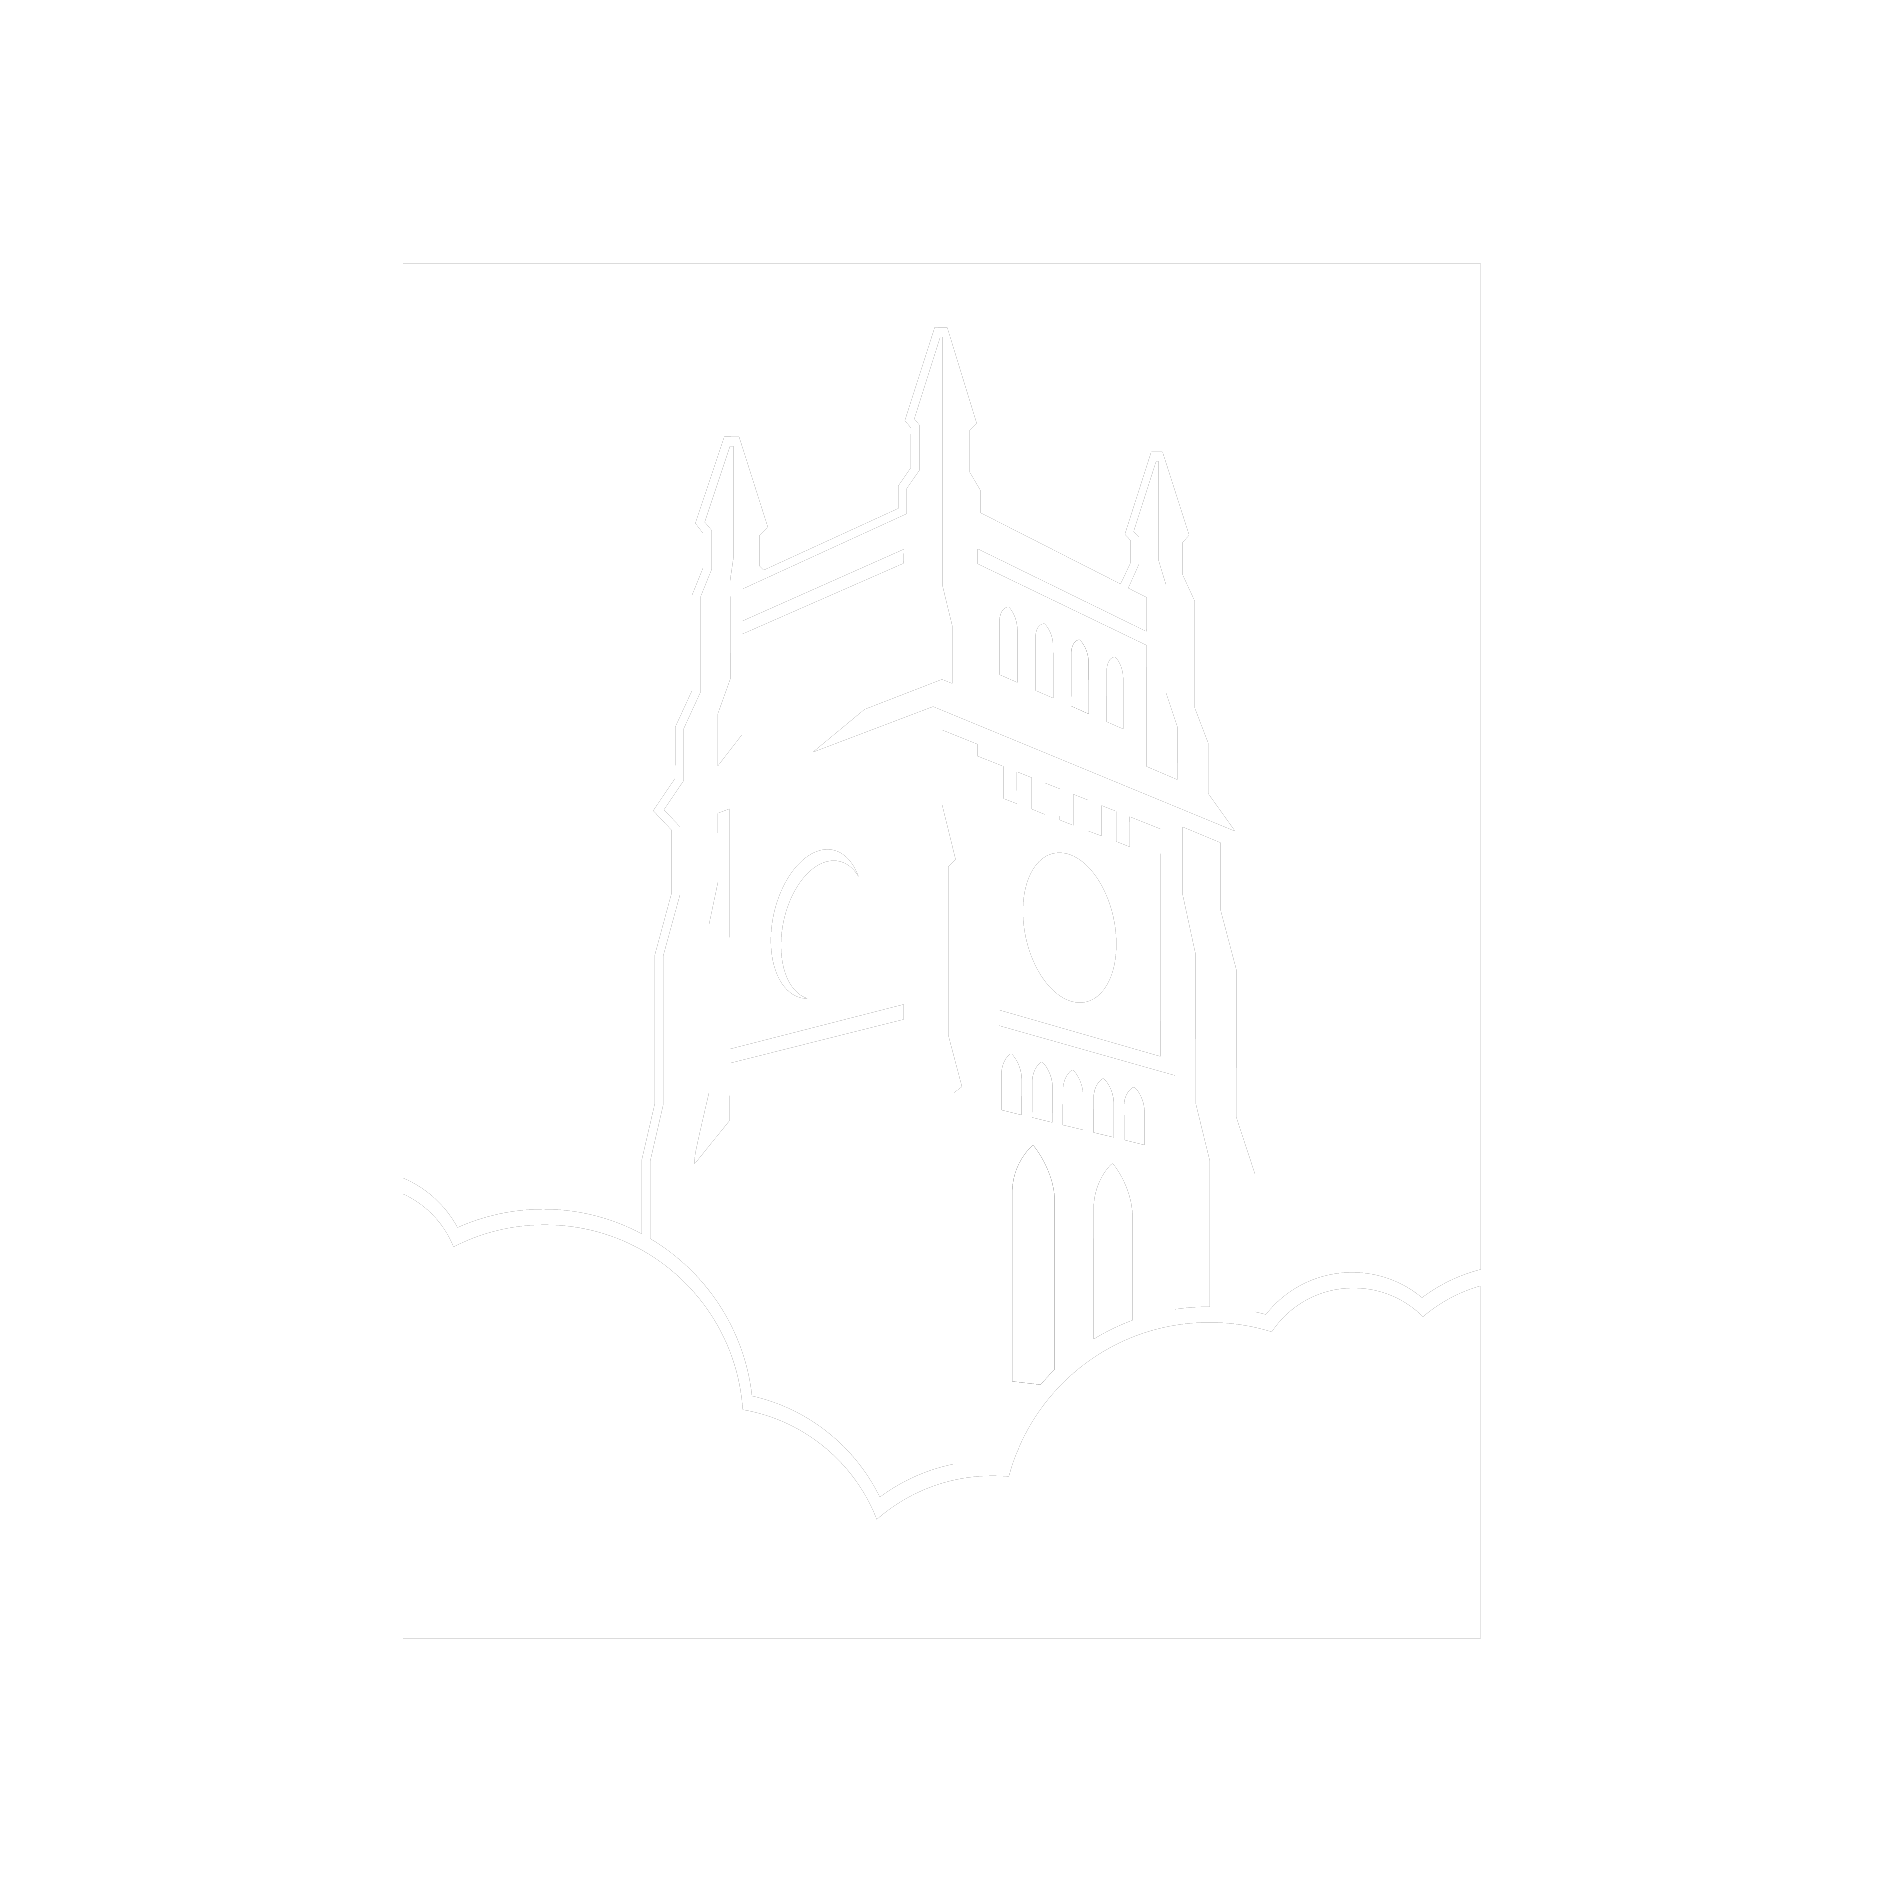 town of walkerville logo-01.png